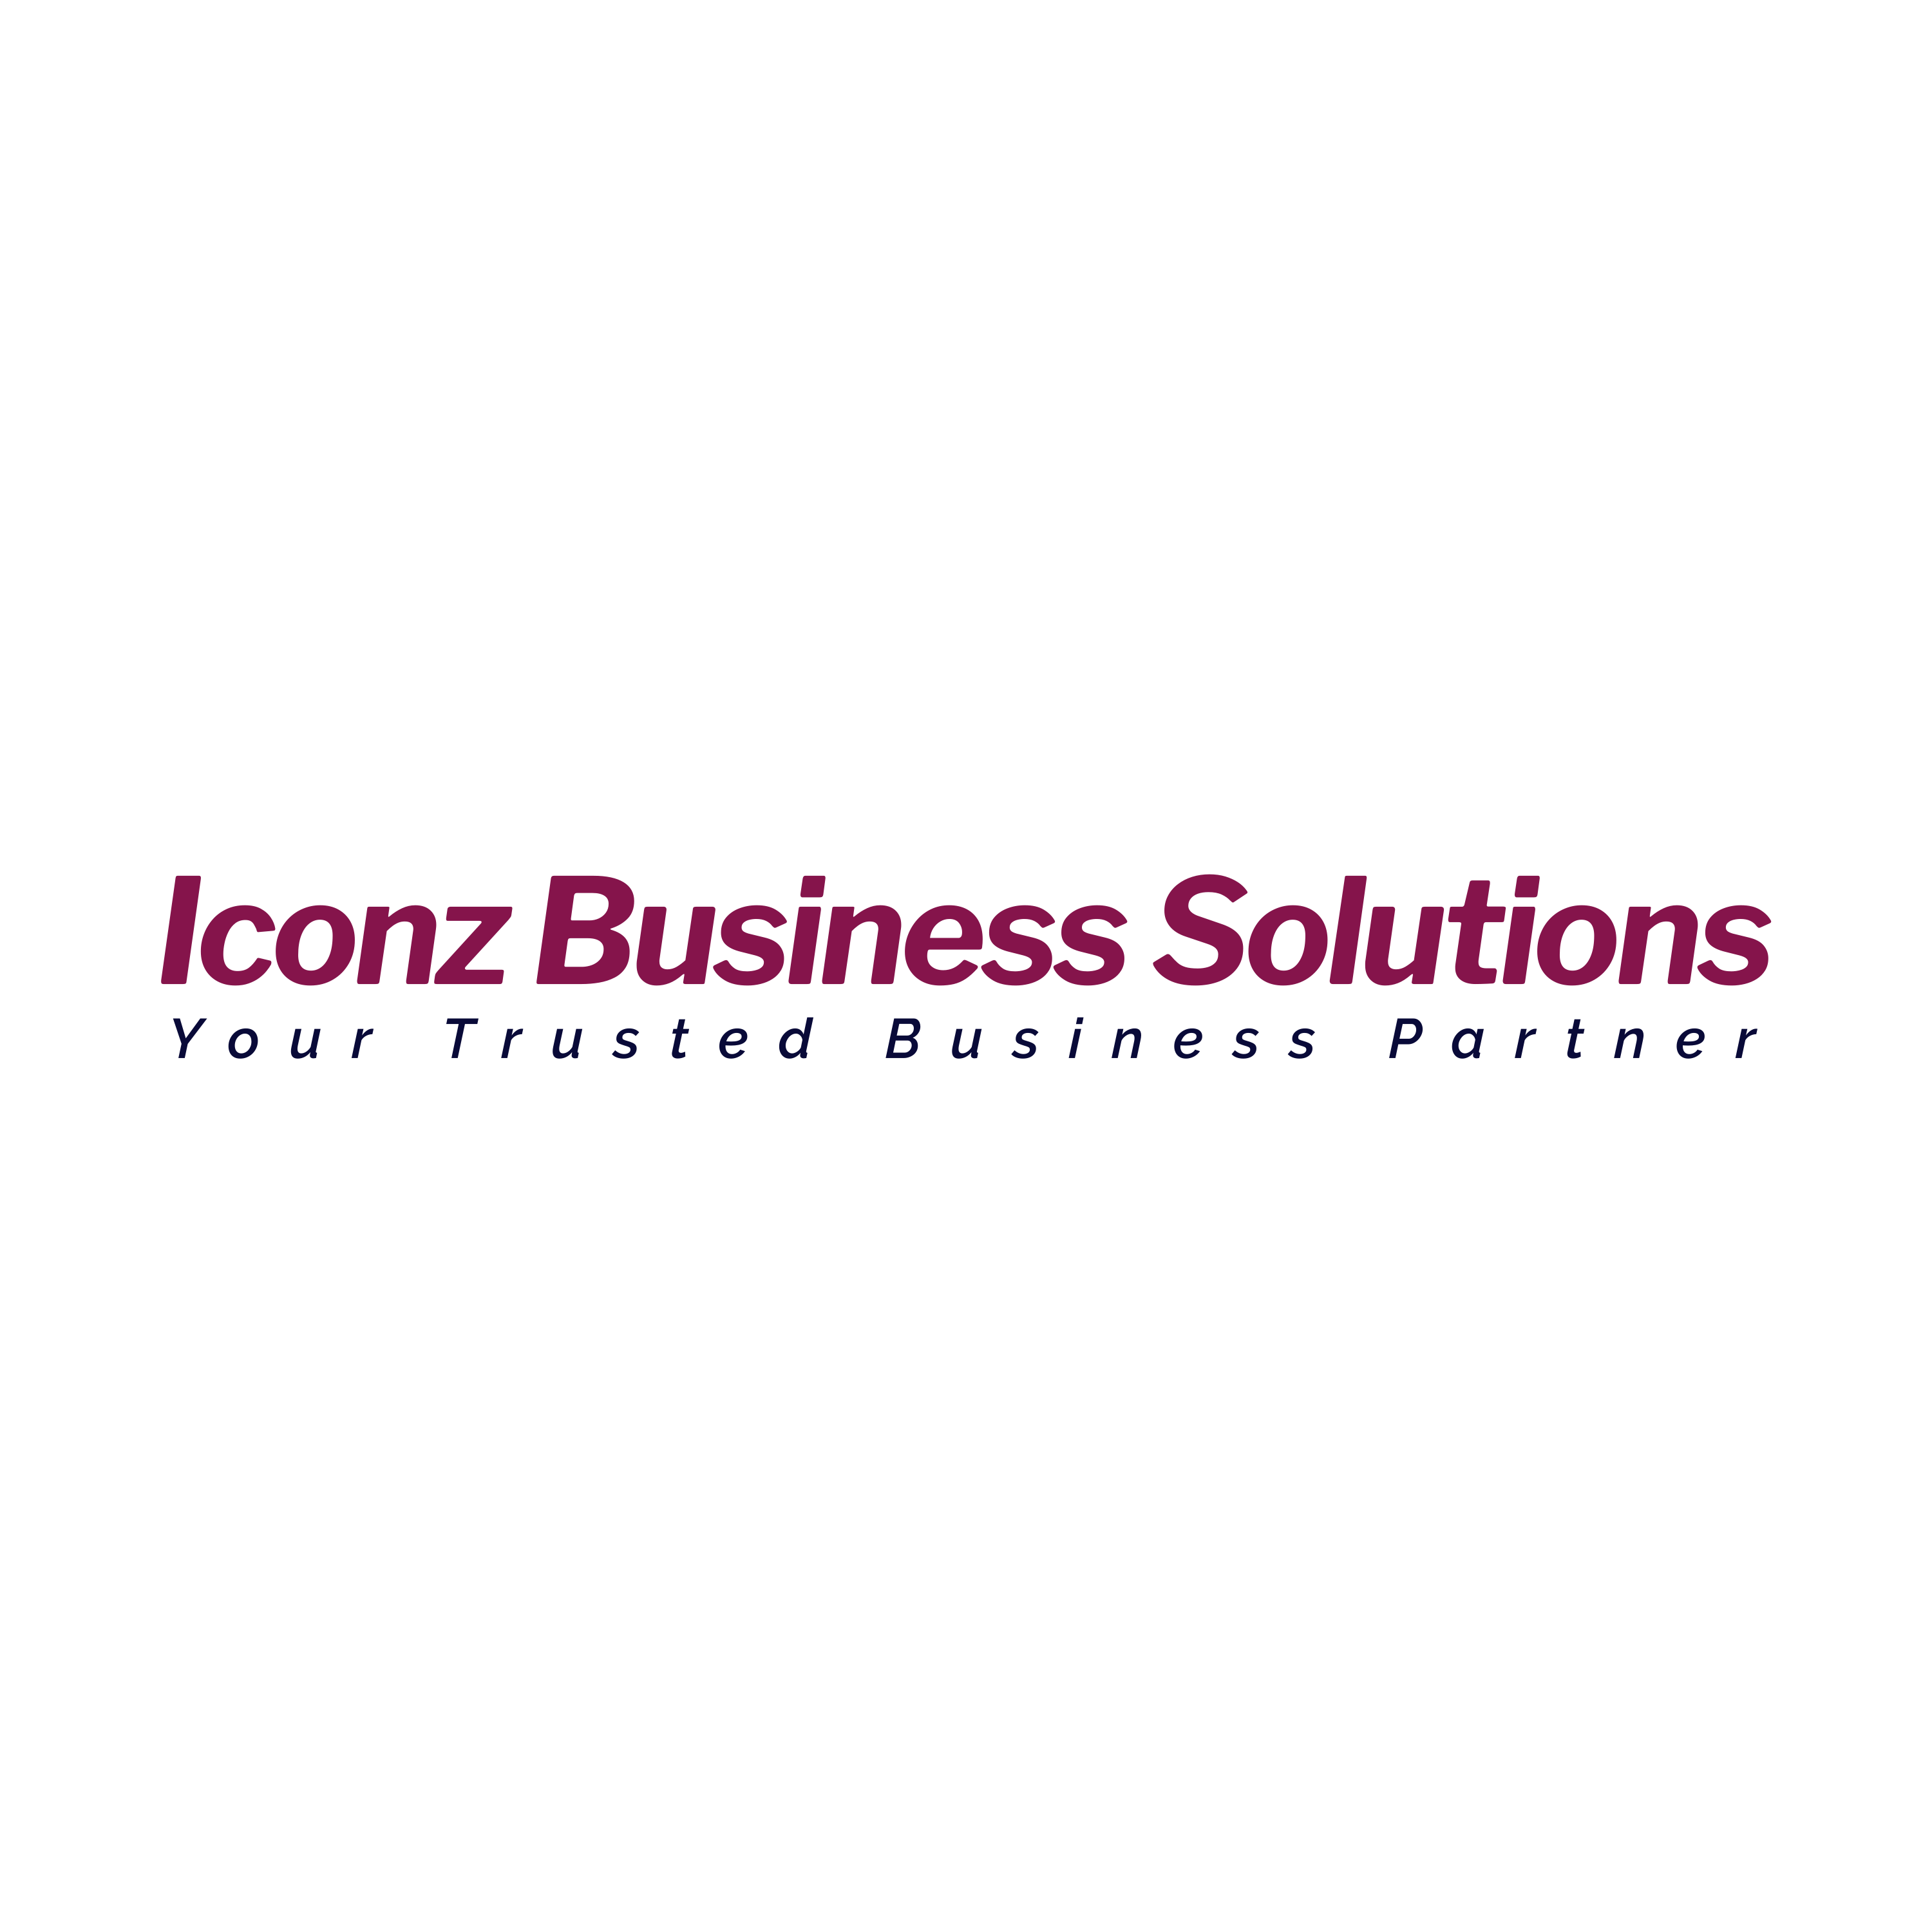 Iconz Business Solutions